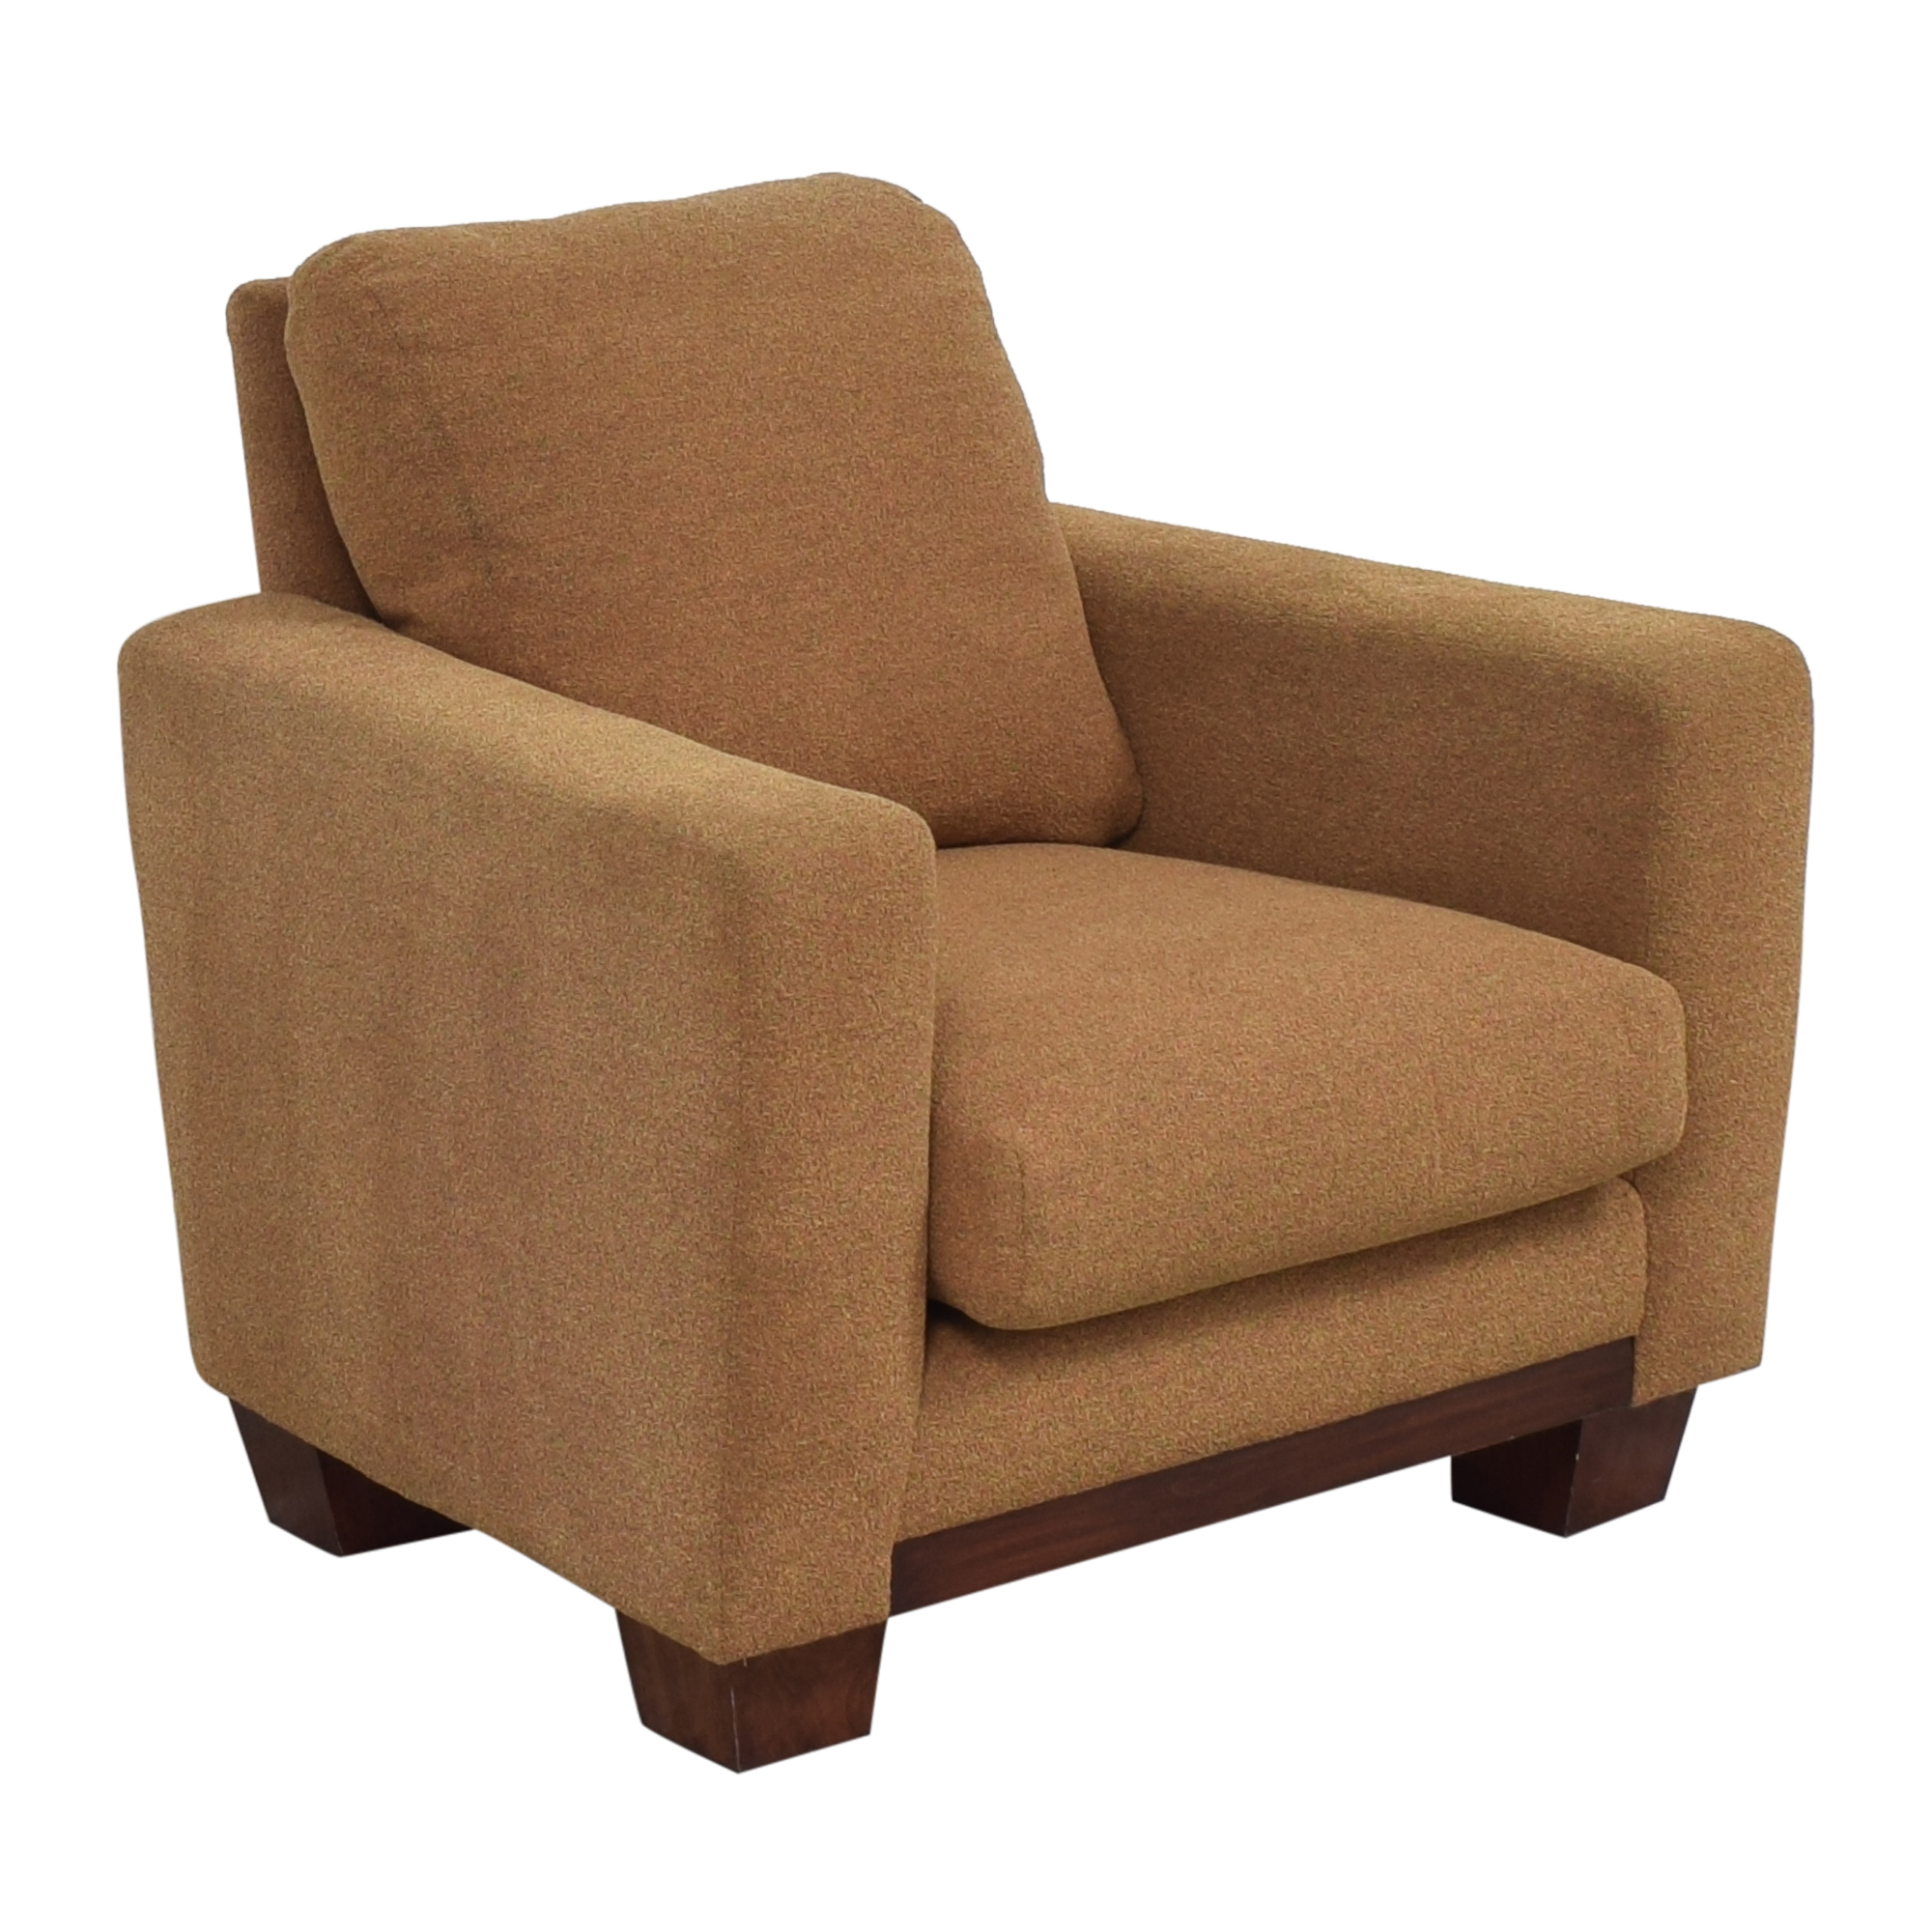 Dennis Miller by Ted Boerner Club Chair / Accent Chairs